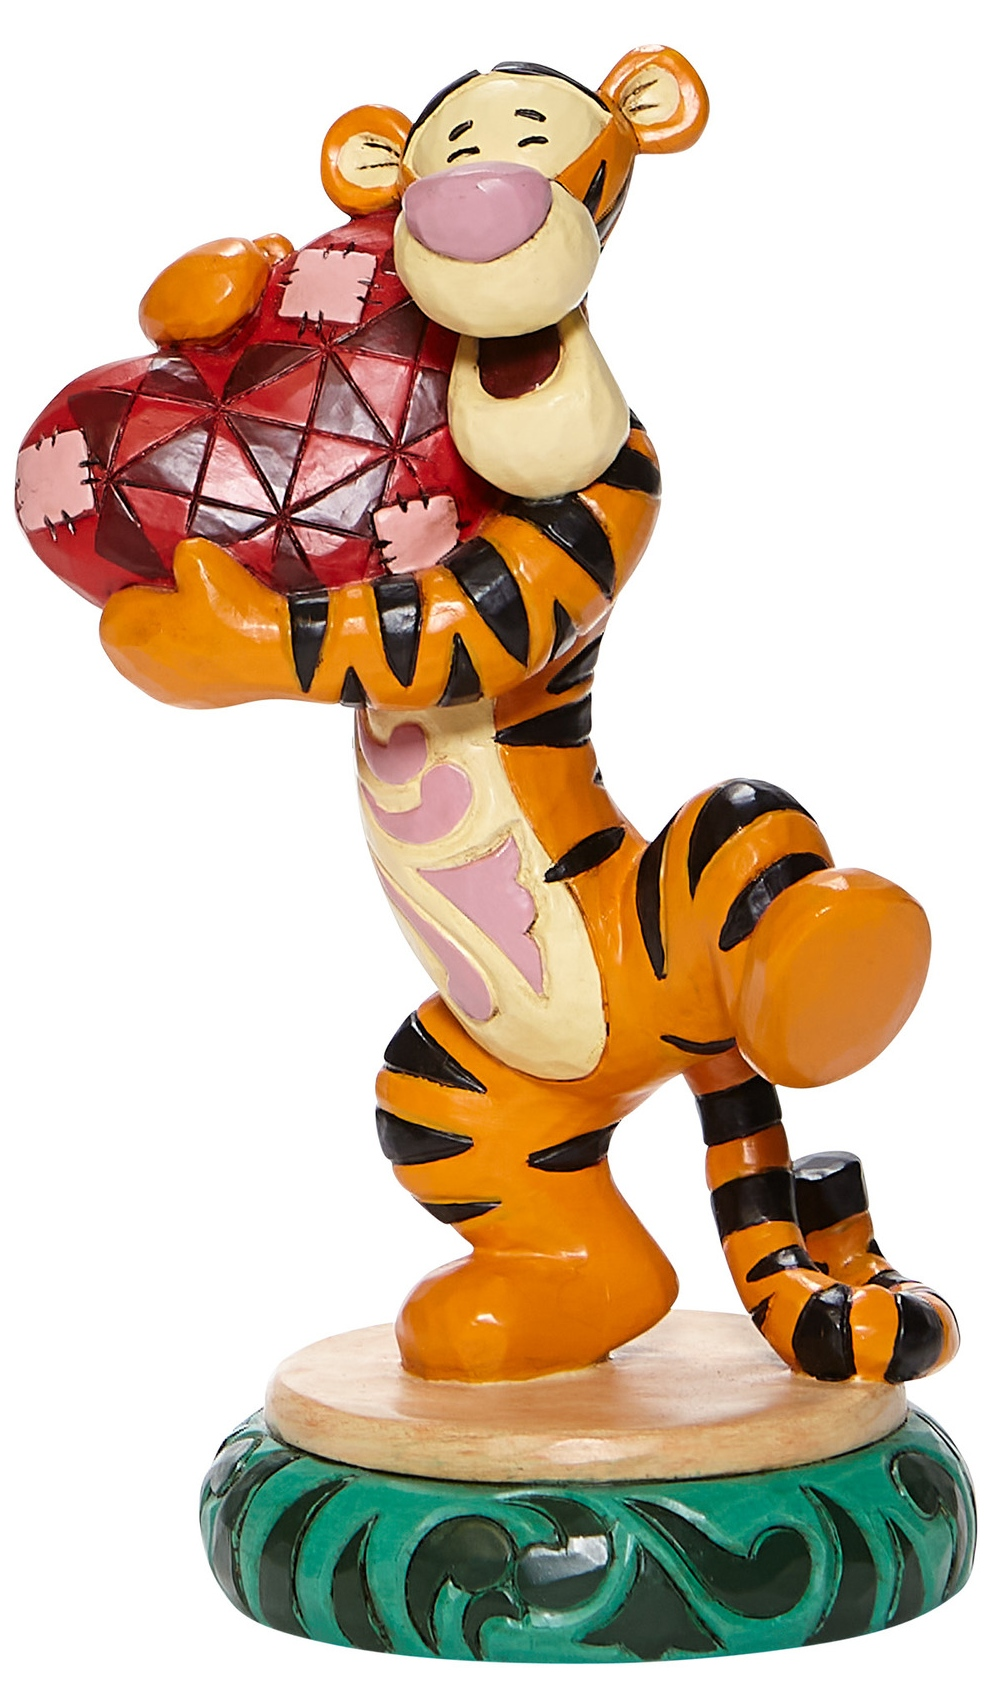 Disney Traditions by Jim Shore 6008073 Tigger Holding Heart Figurine